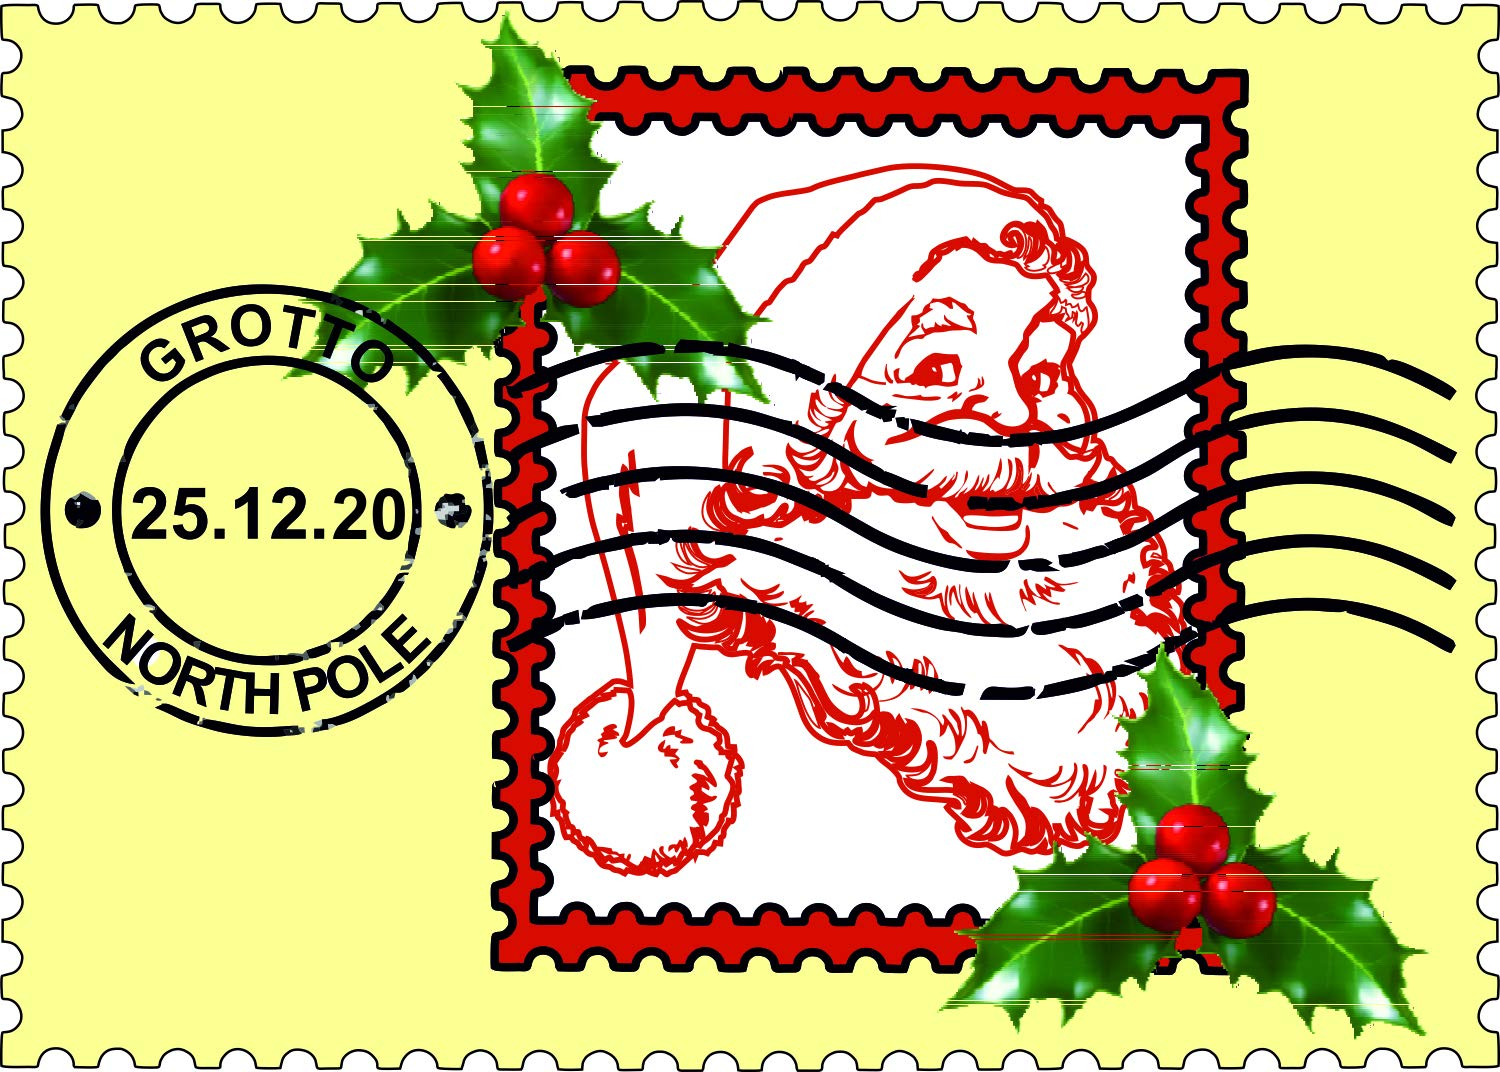 A4 Sheet A4 Sheet - 5cm x 5cm Stickers 15 x From Santa Stickers Christmas Toy Factory Gift Tag Kids #6602